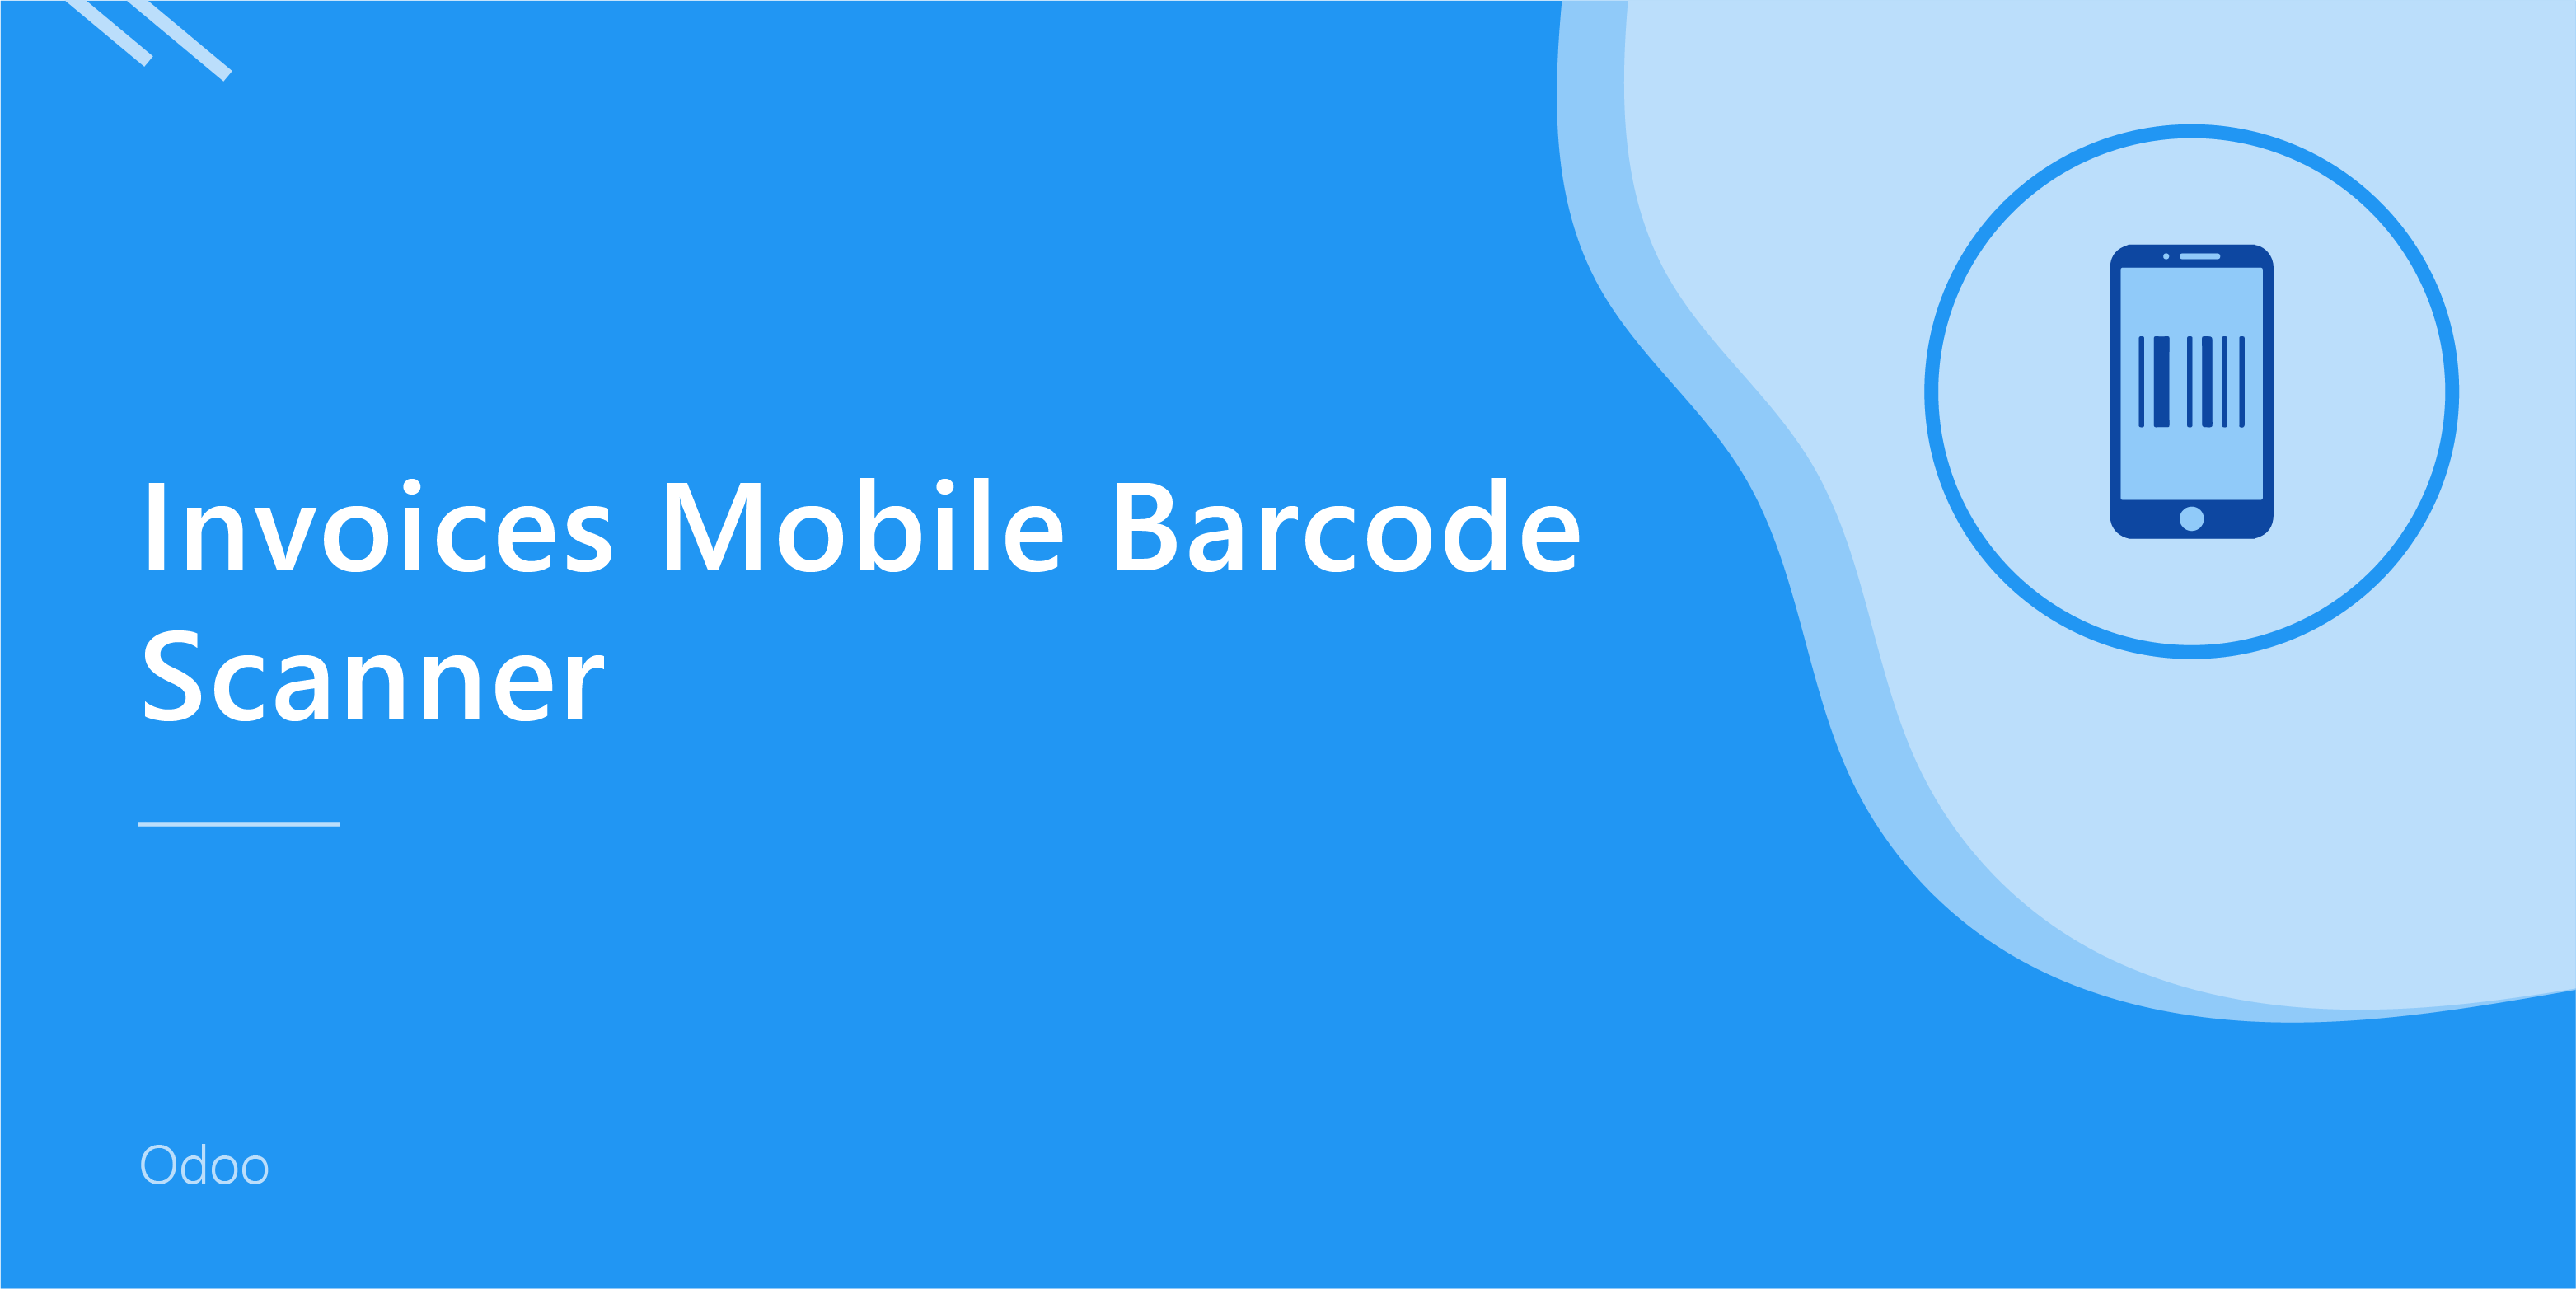 Invoices Mobile Barcode/QRCode Scanner